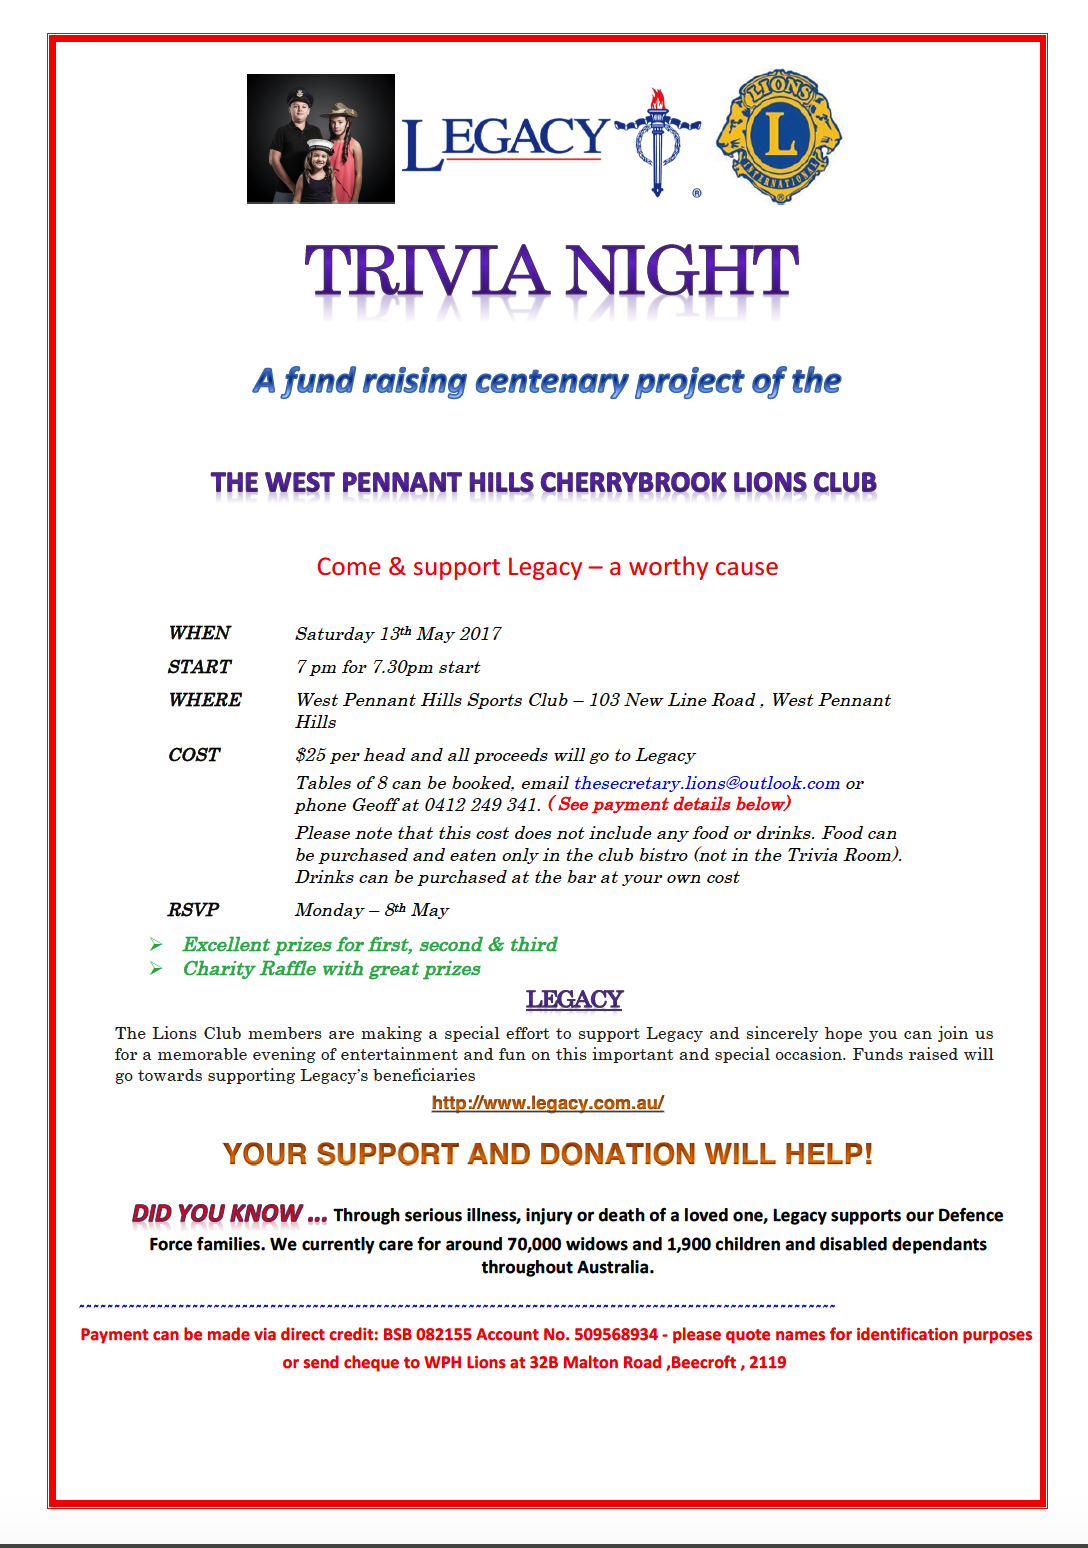 Trivia_Night_Flyer_2017